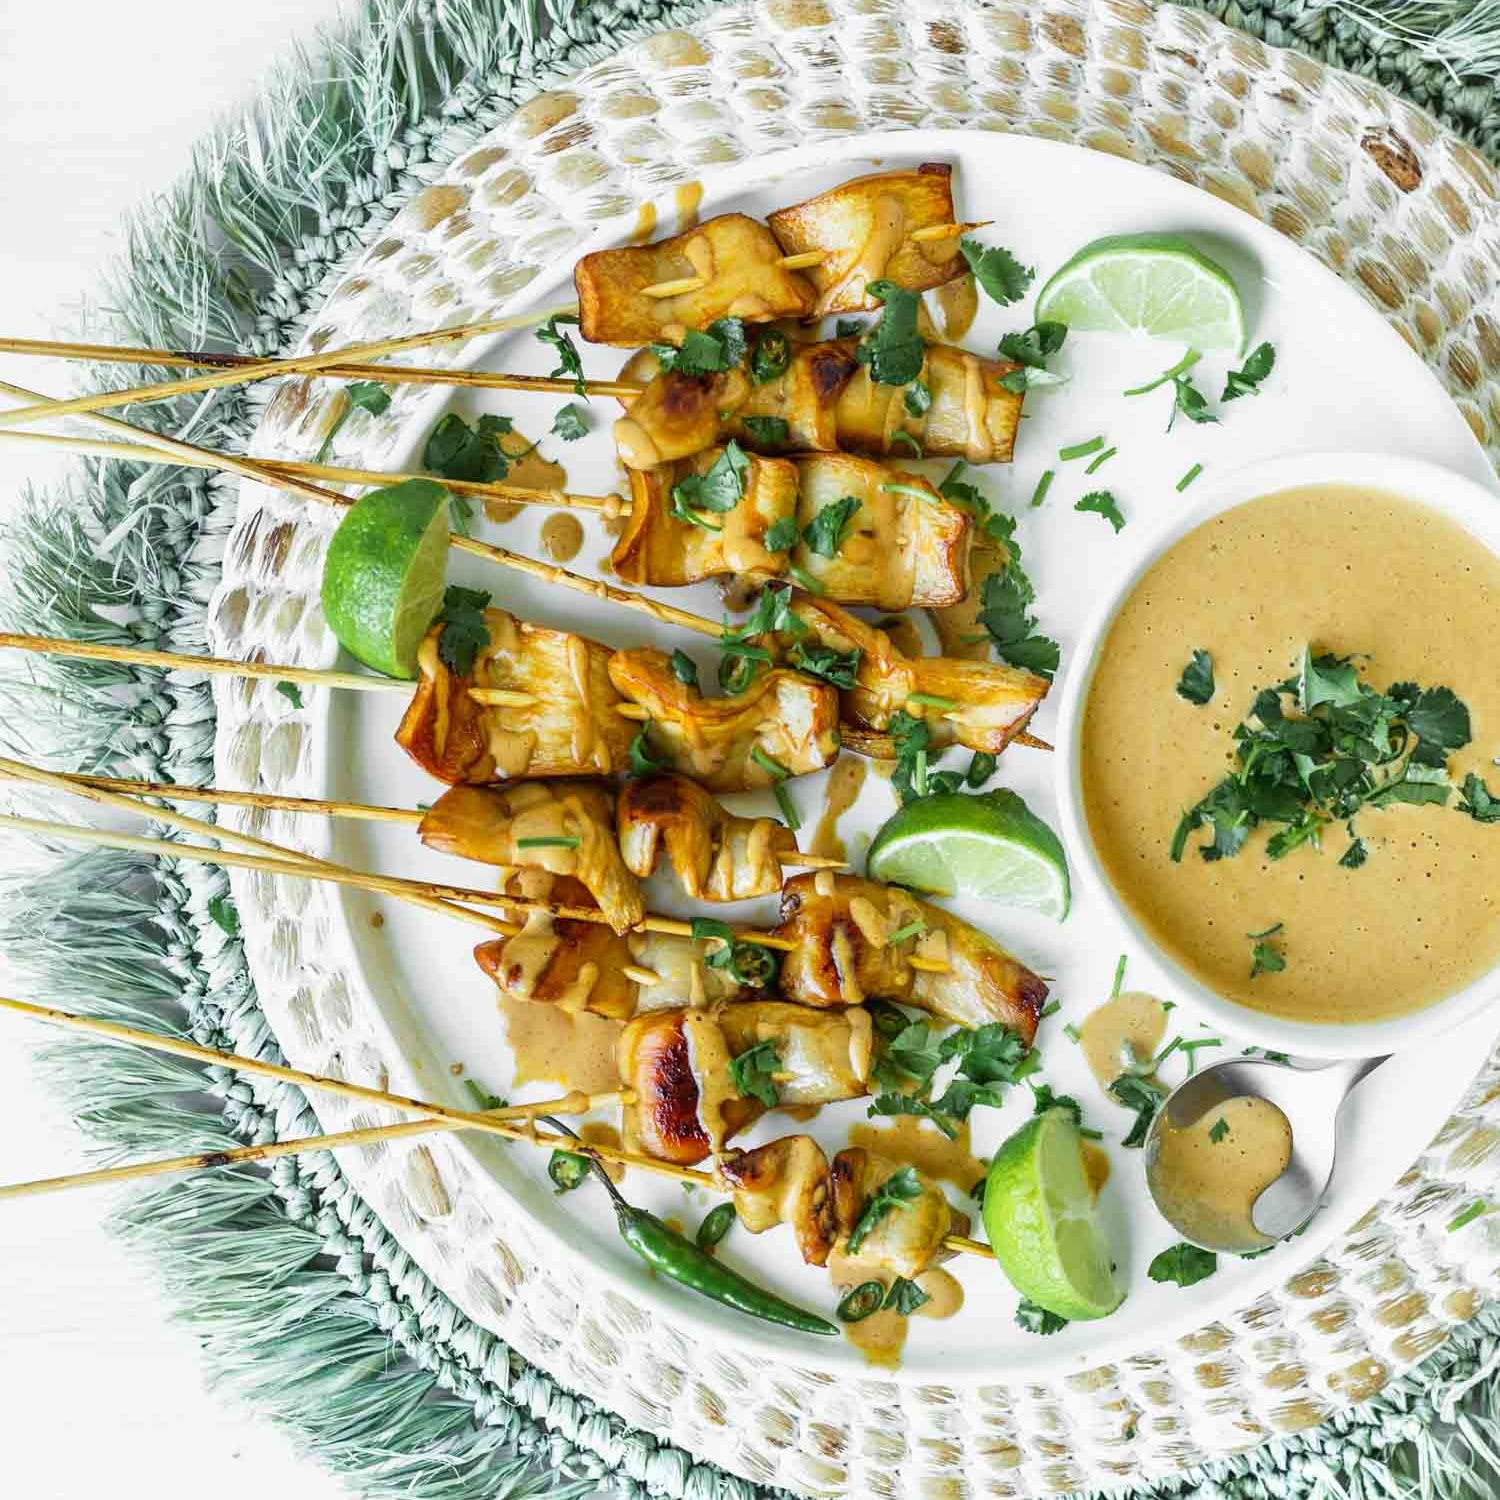 King Satay with Spicy Peanut-Ginger Sauce Recipe from The Wicked Healthy Cookbook